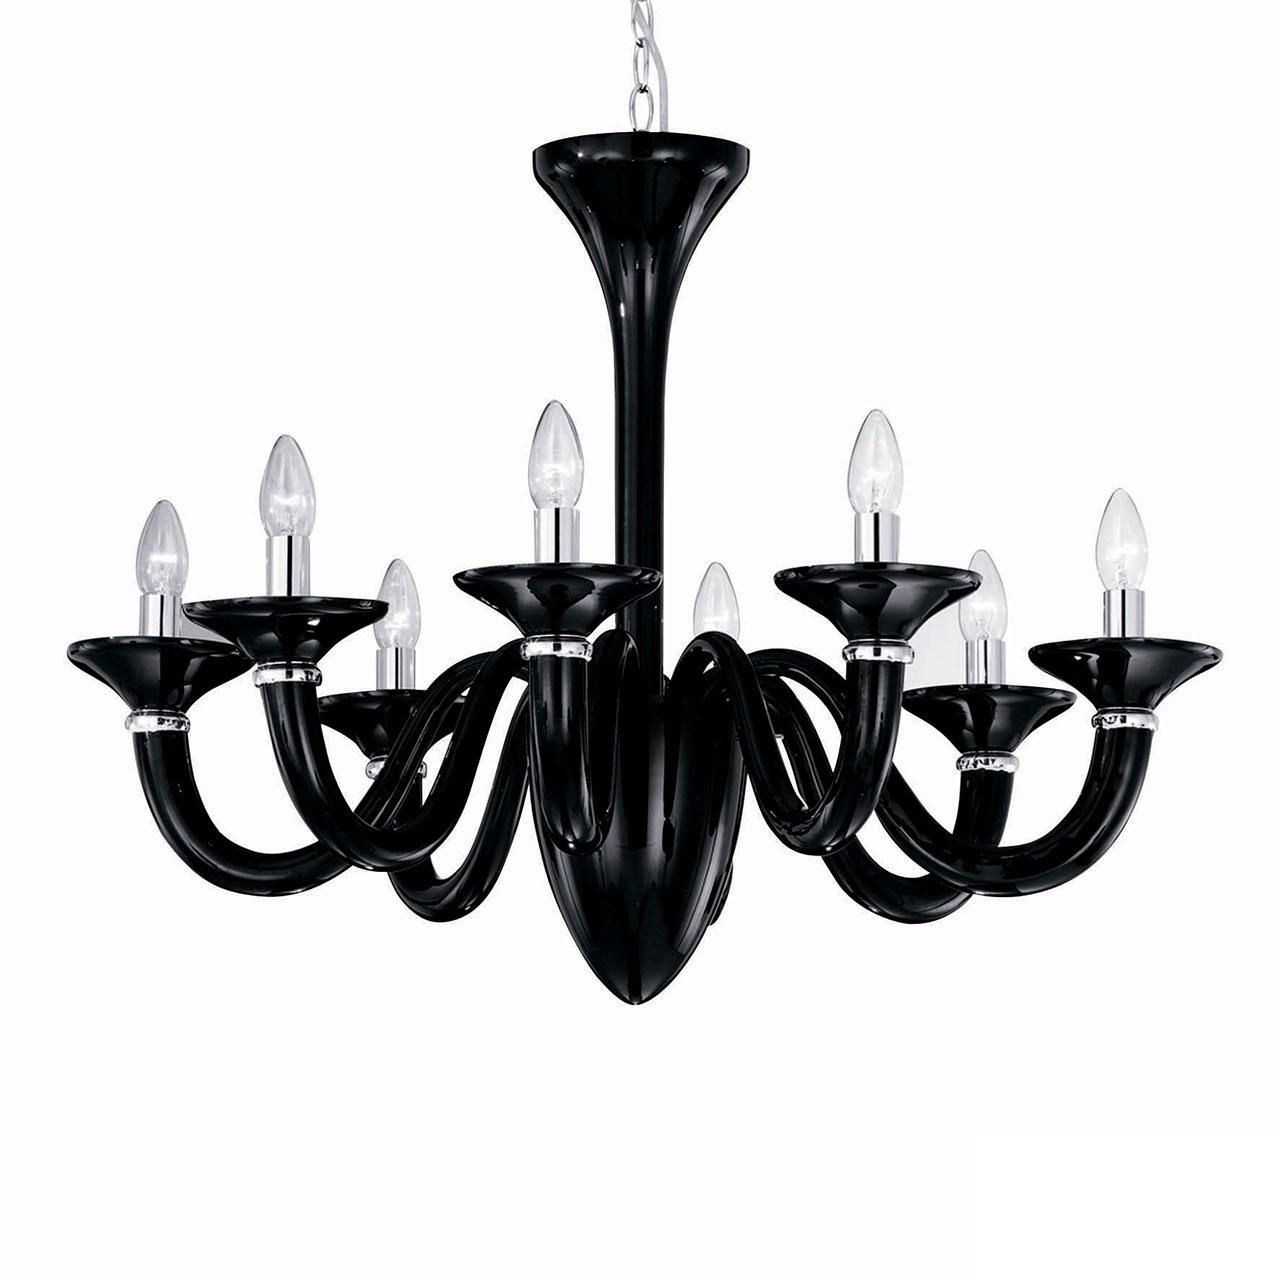 Люстра Ideal Lux 20518 White Lady SP8 Nero